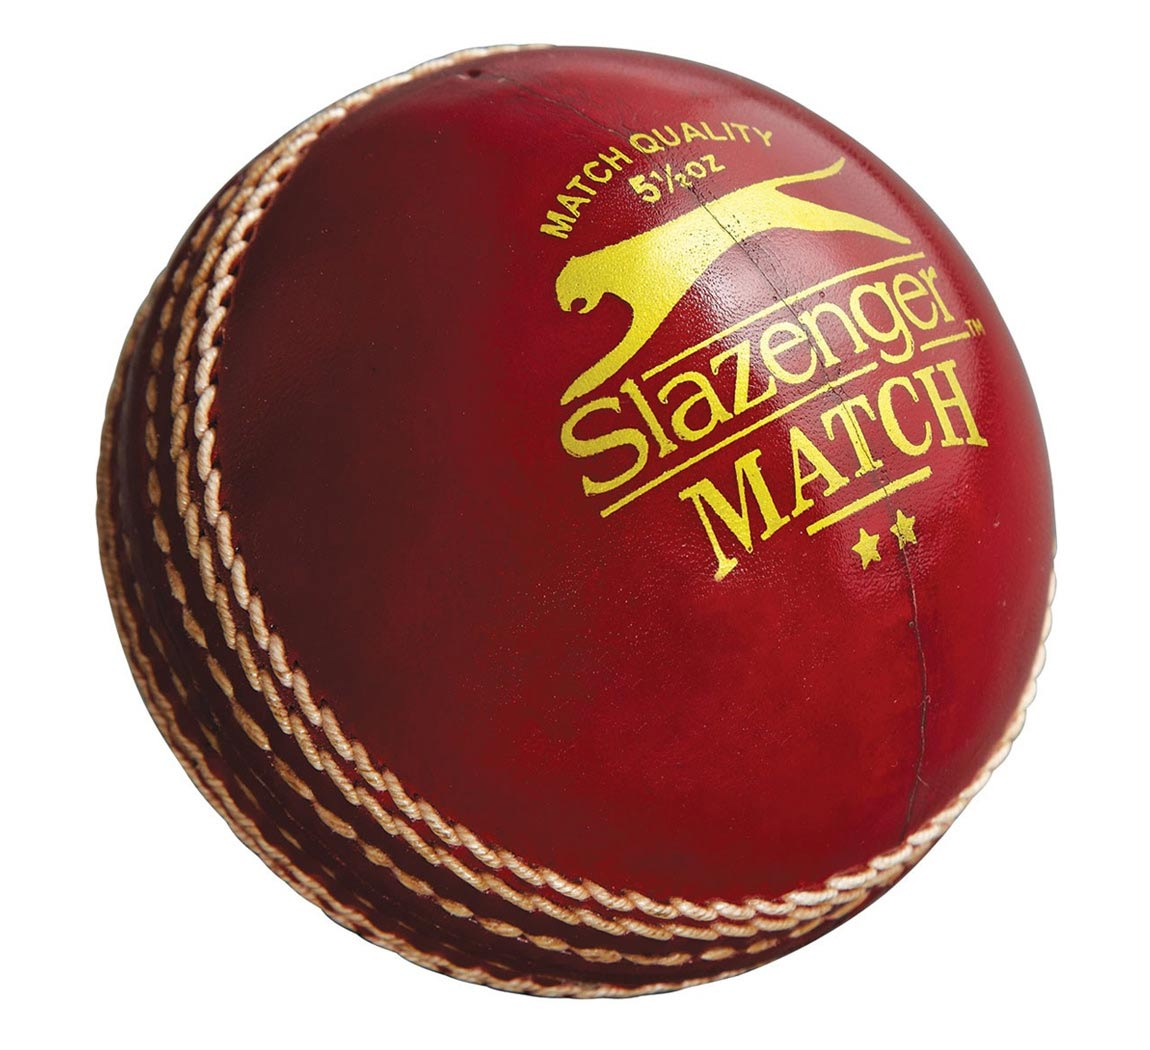 Slazenger County Match Cricket Ball